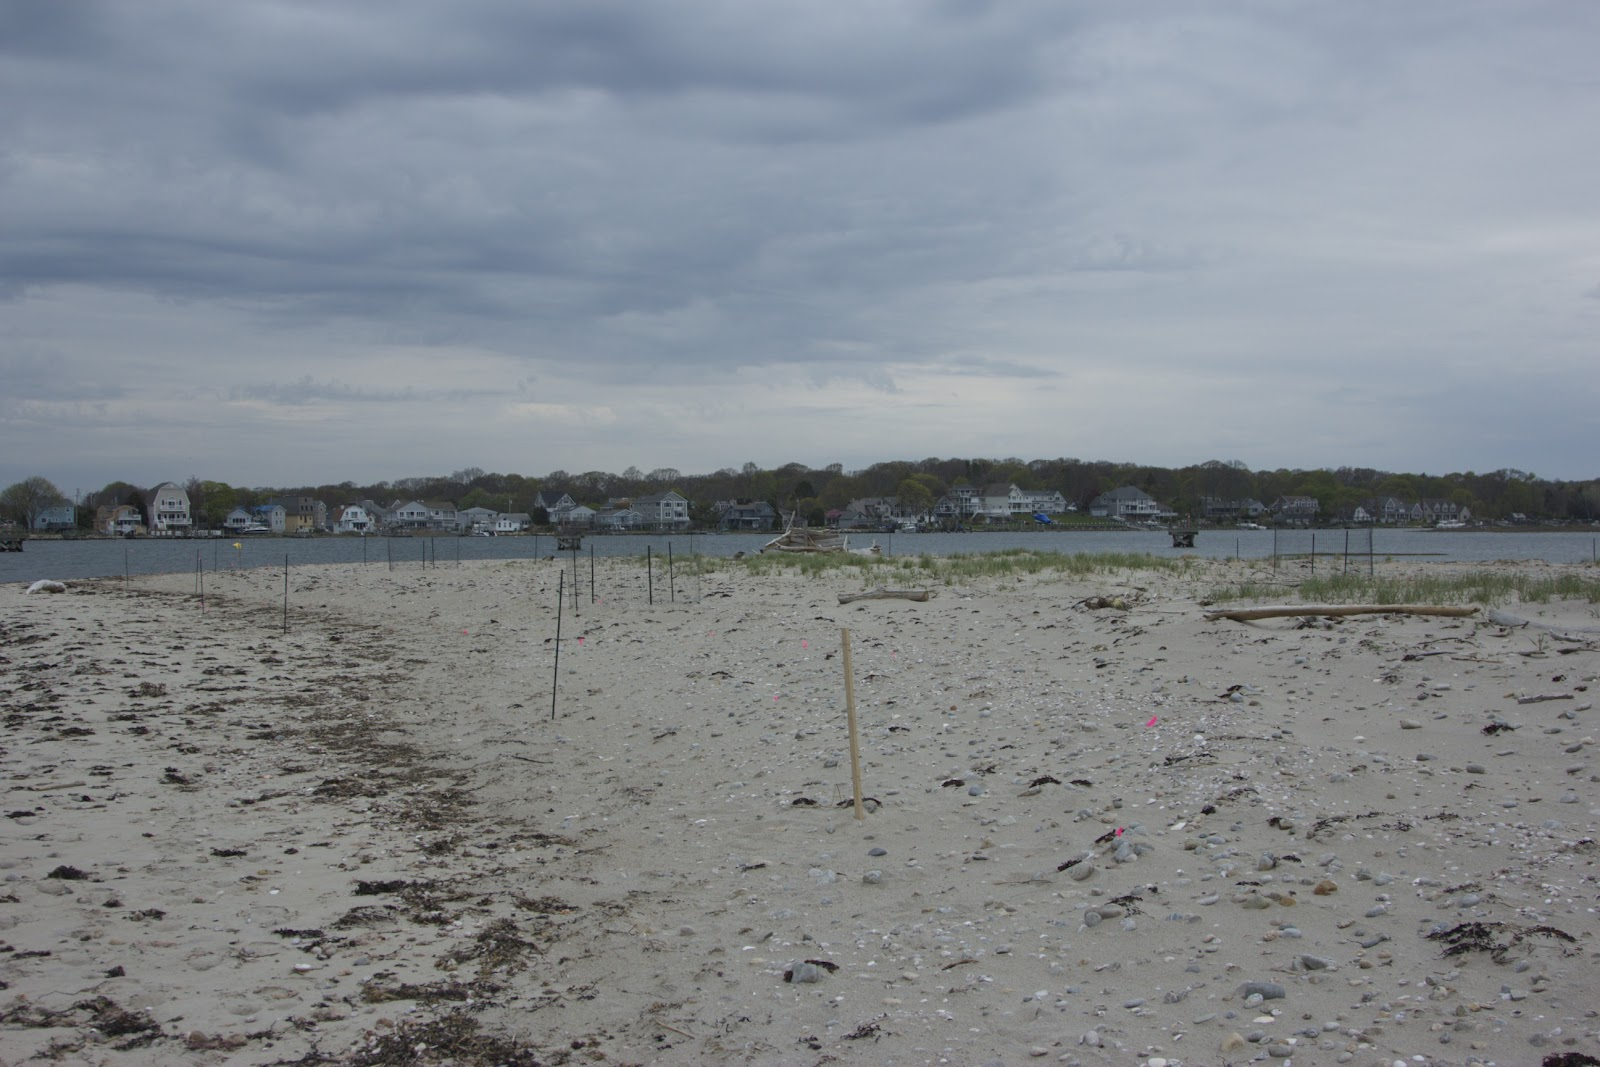 How to Set Up a Beach Exclosure to Protect Shorebirds